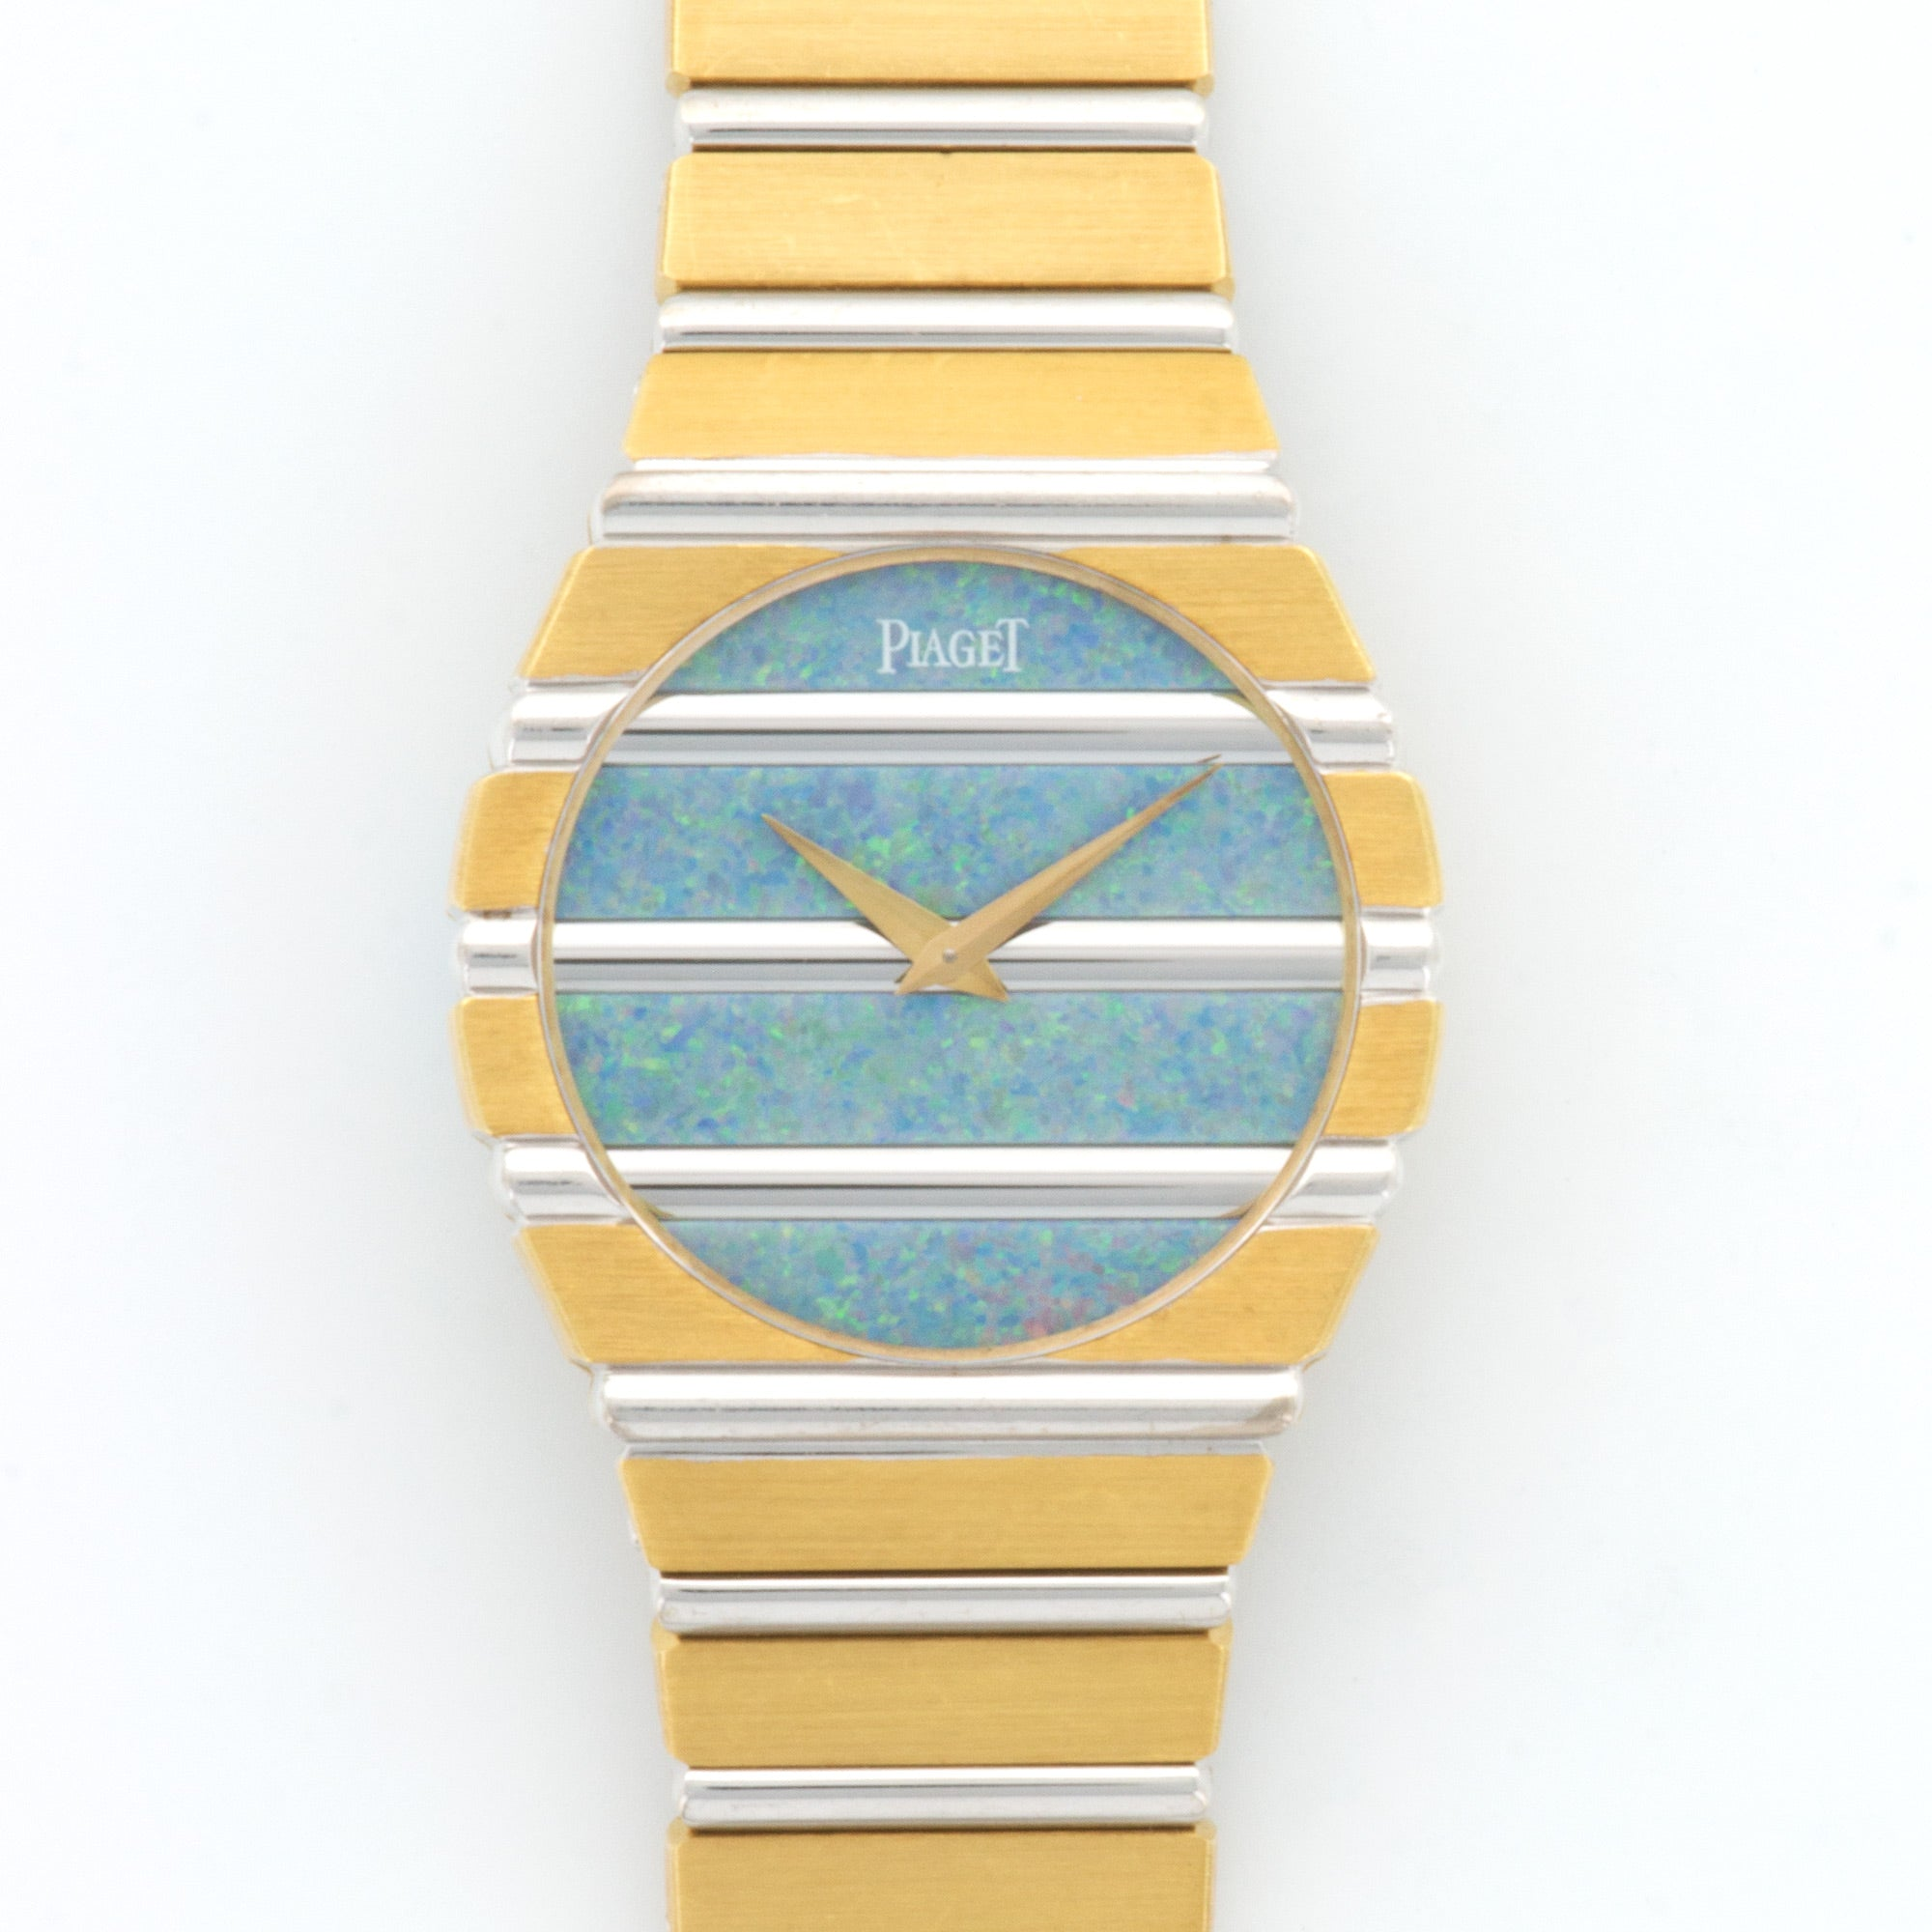 Piaget Polo 791 WG/YG  Very Good Unisex WG/YG Opal 29.9mm Quartz 1980s Yellow and White Gold Bracelet (157mm)` Paper